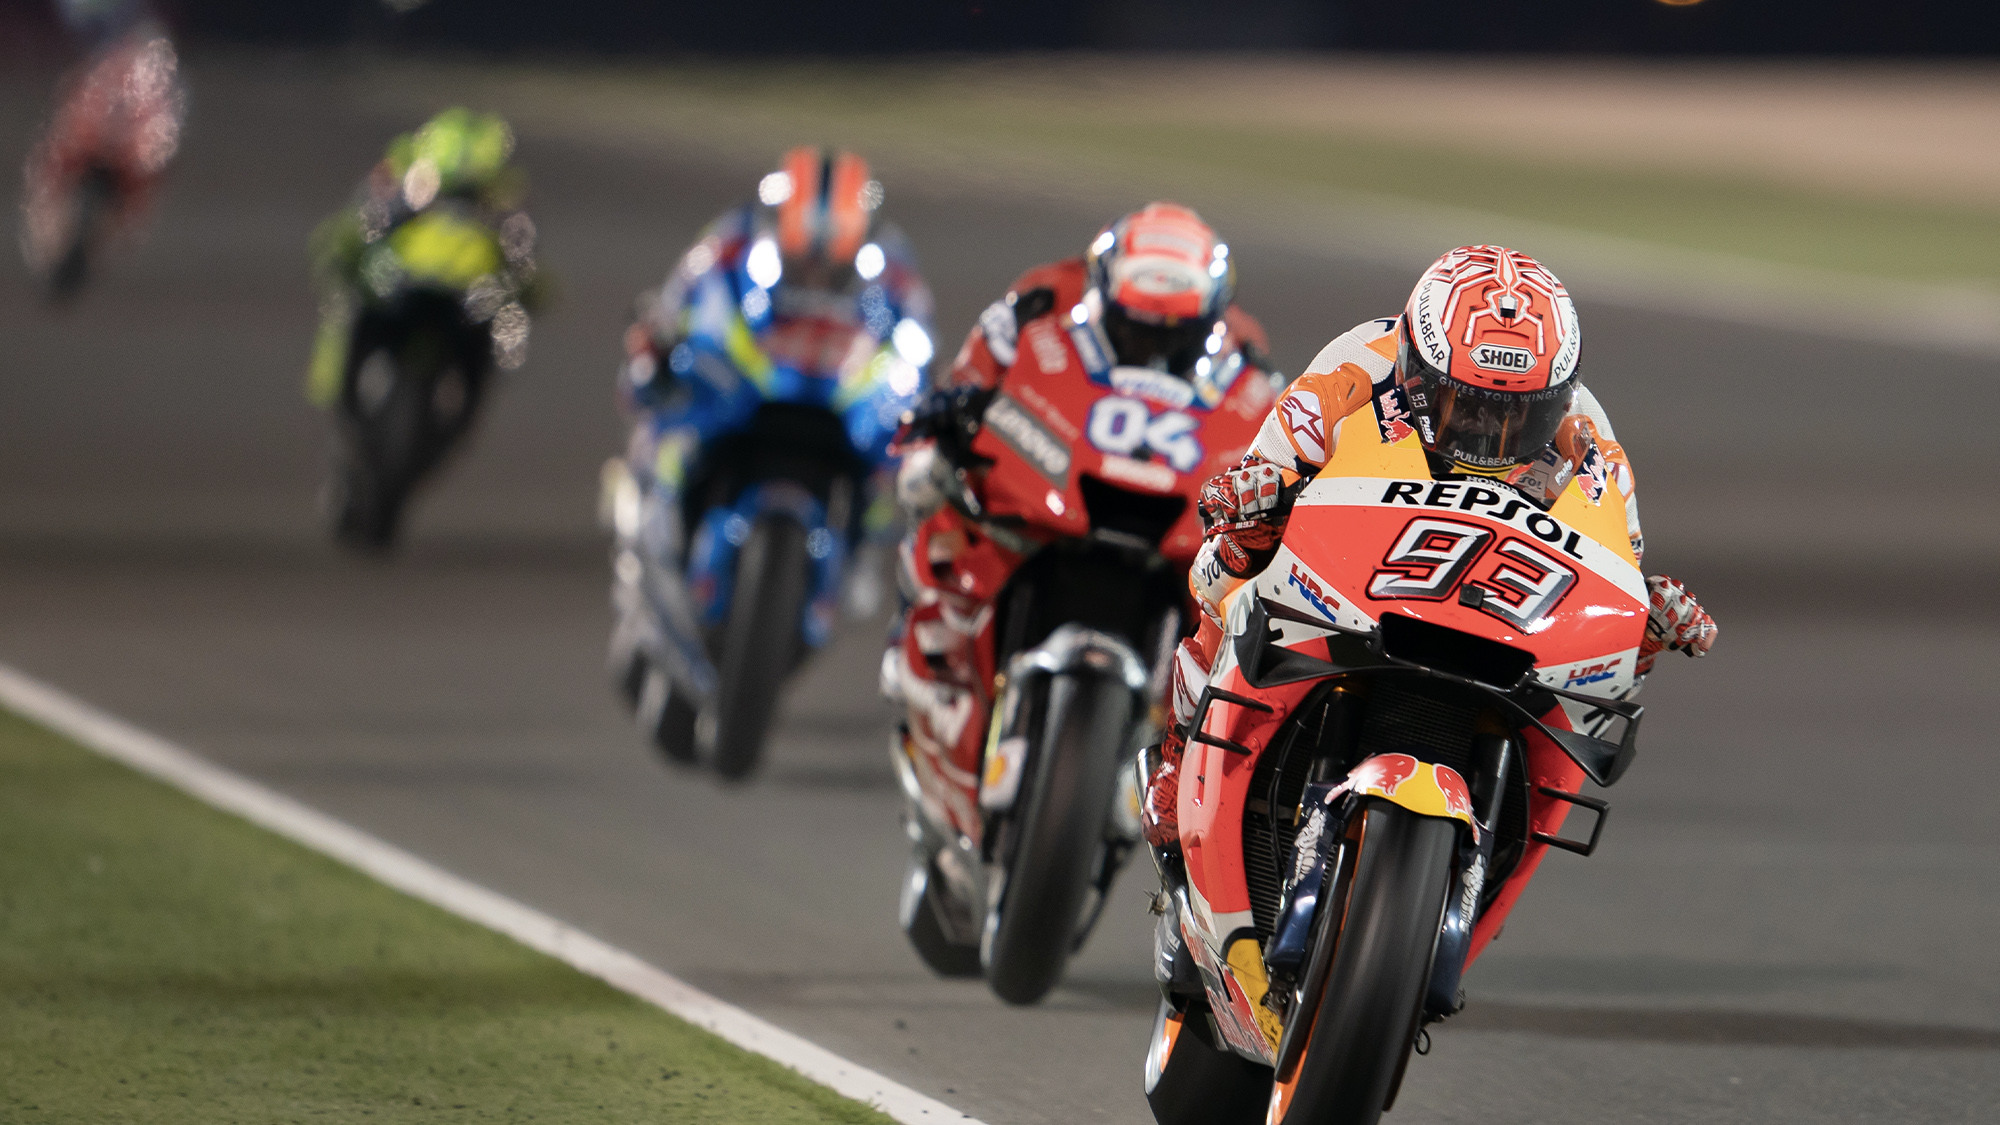 Marc Marquez leading the pack